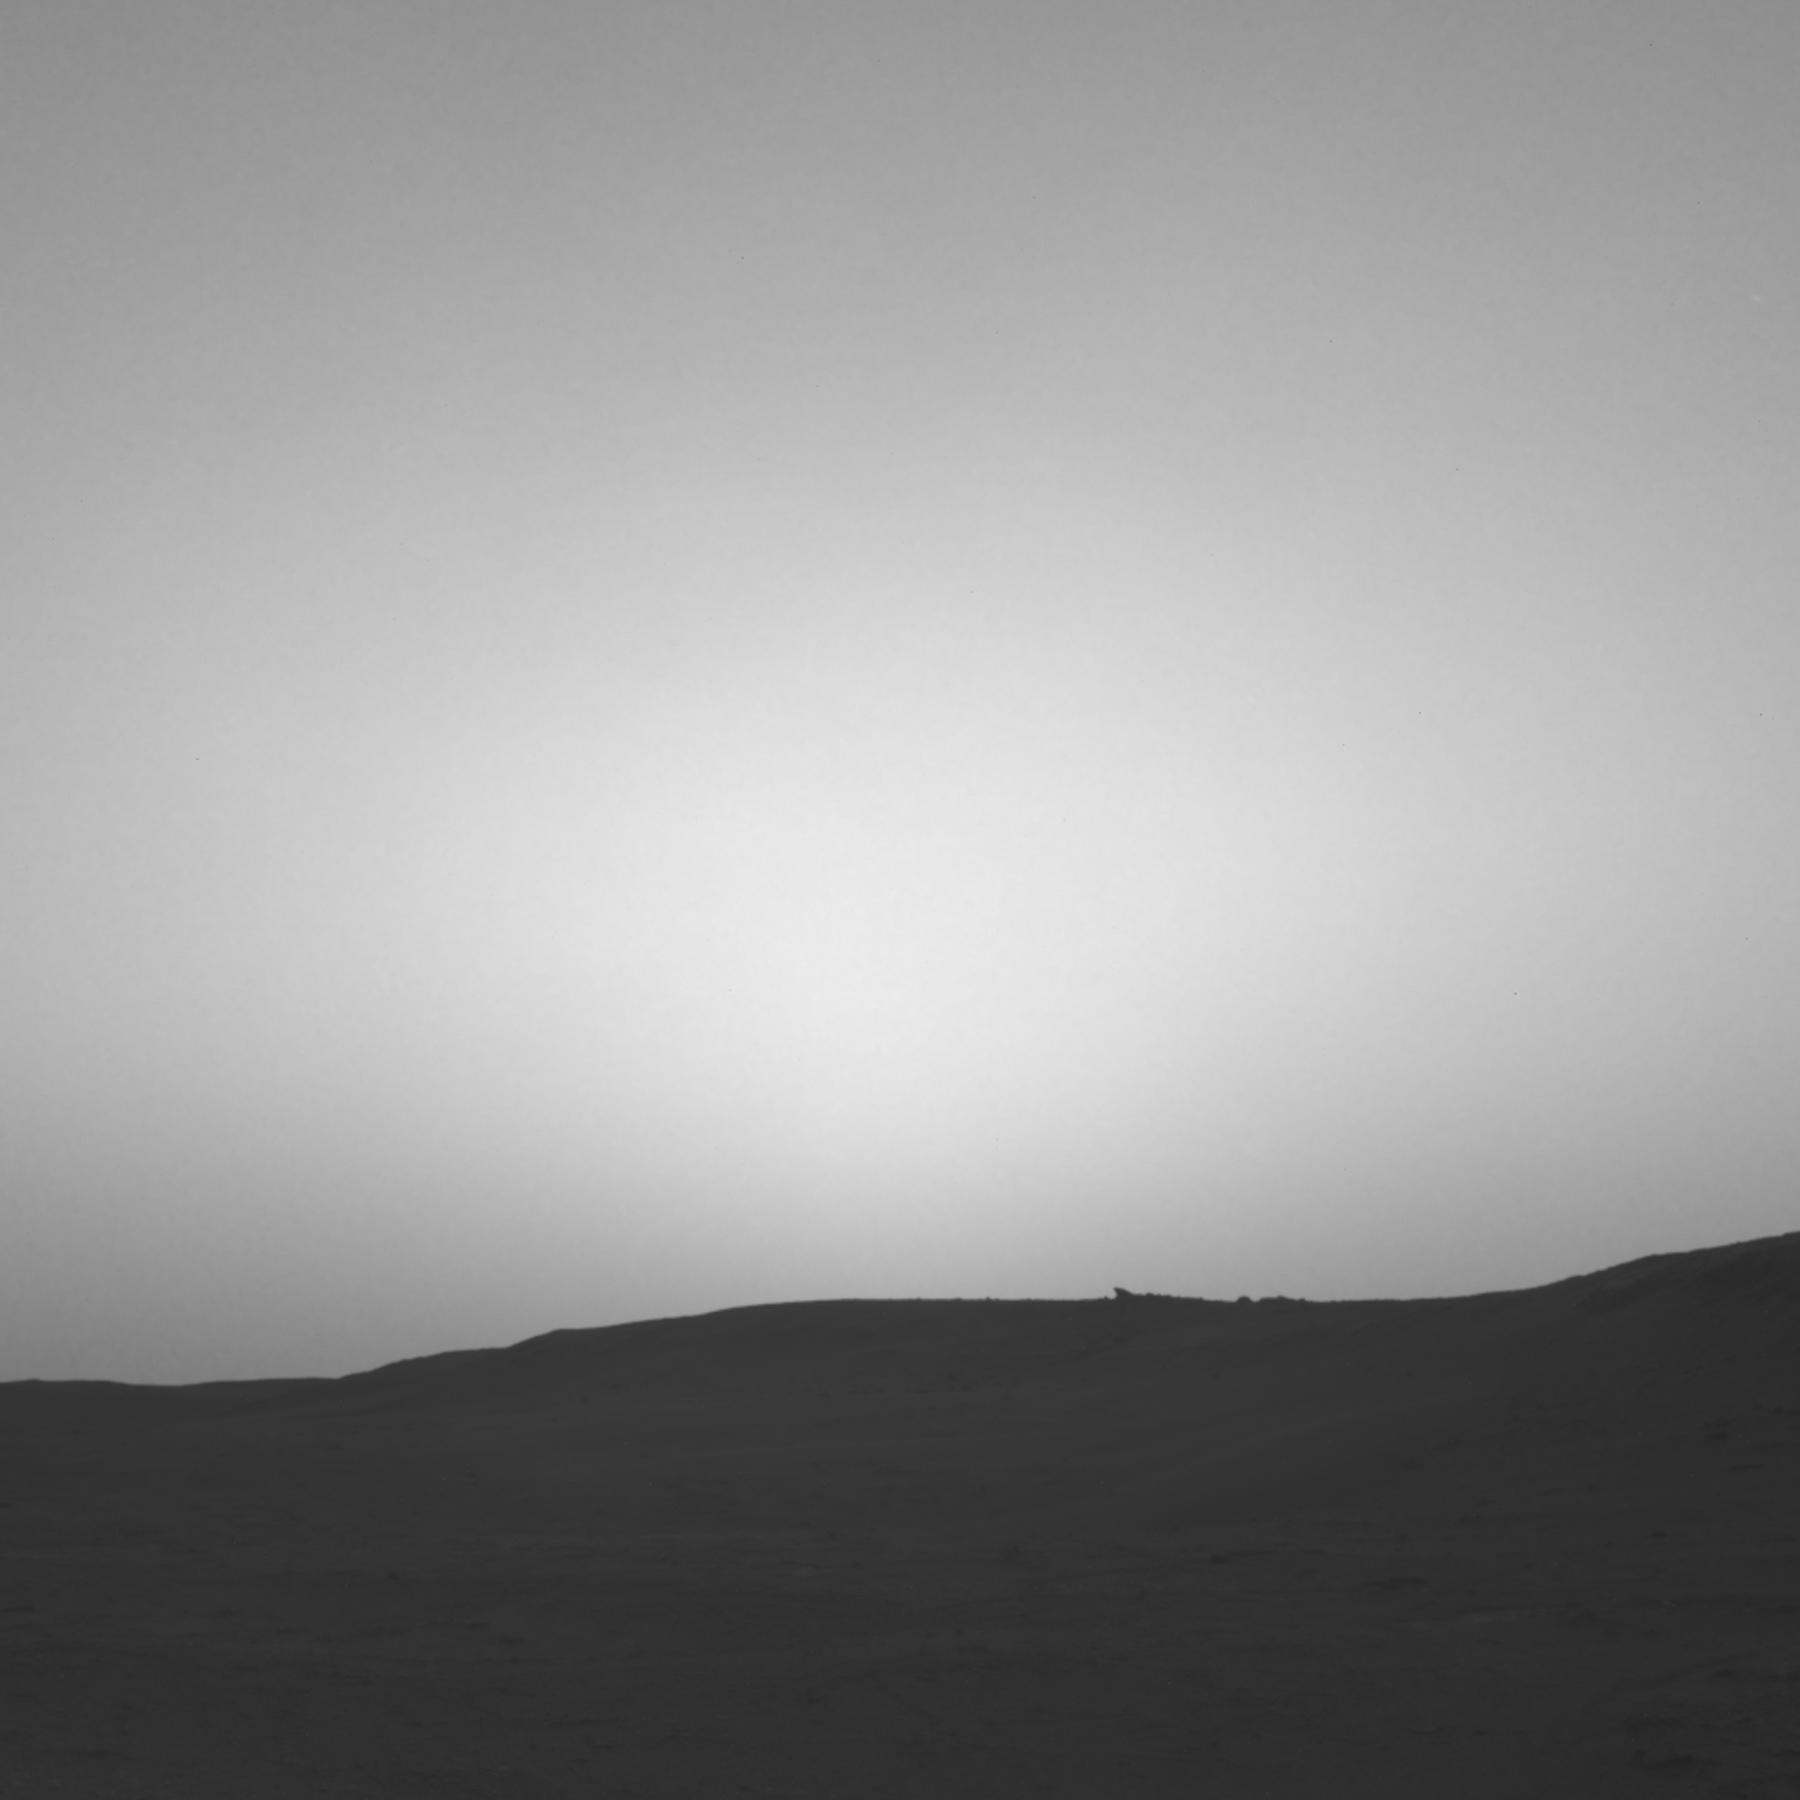 This series of images shows the shadow of Phobos as it sweeps over NASAs Curiosity Mars rover and darkens the sunlight on Monday, March 25, 2019 (Sol 2358).